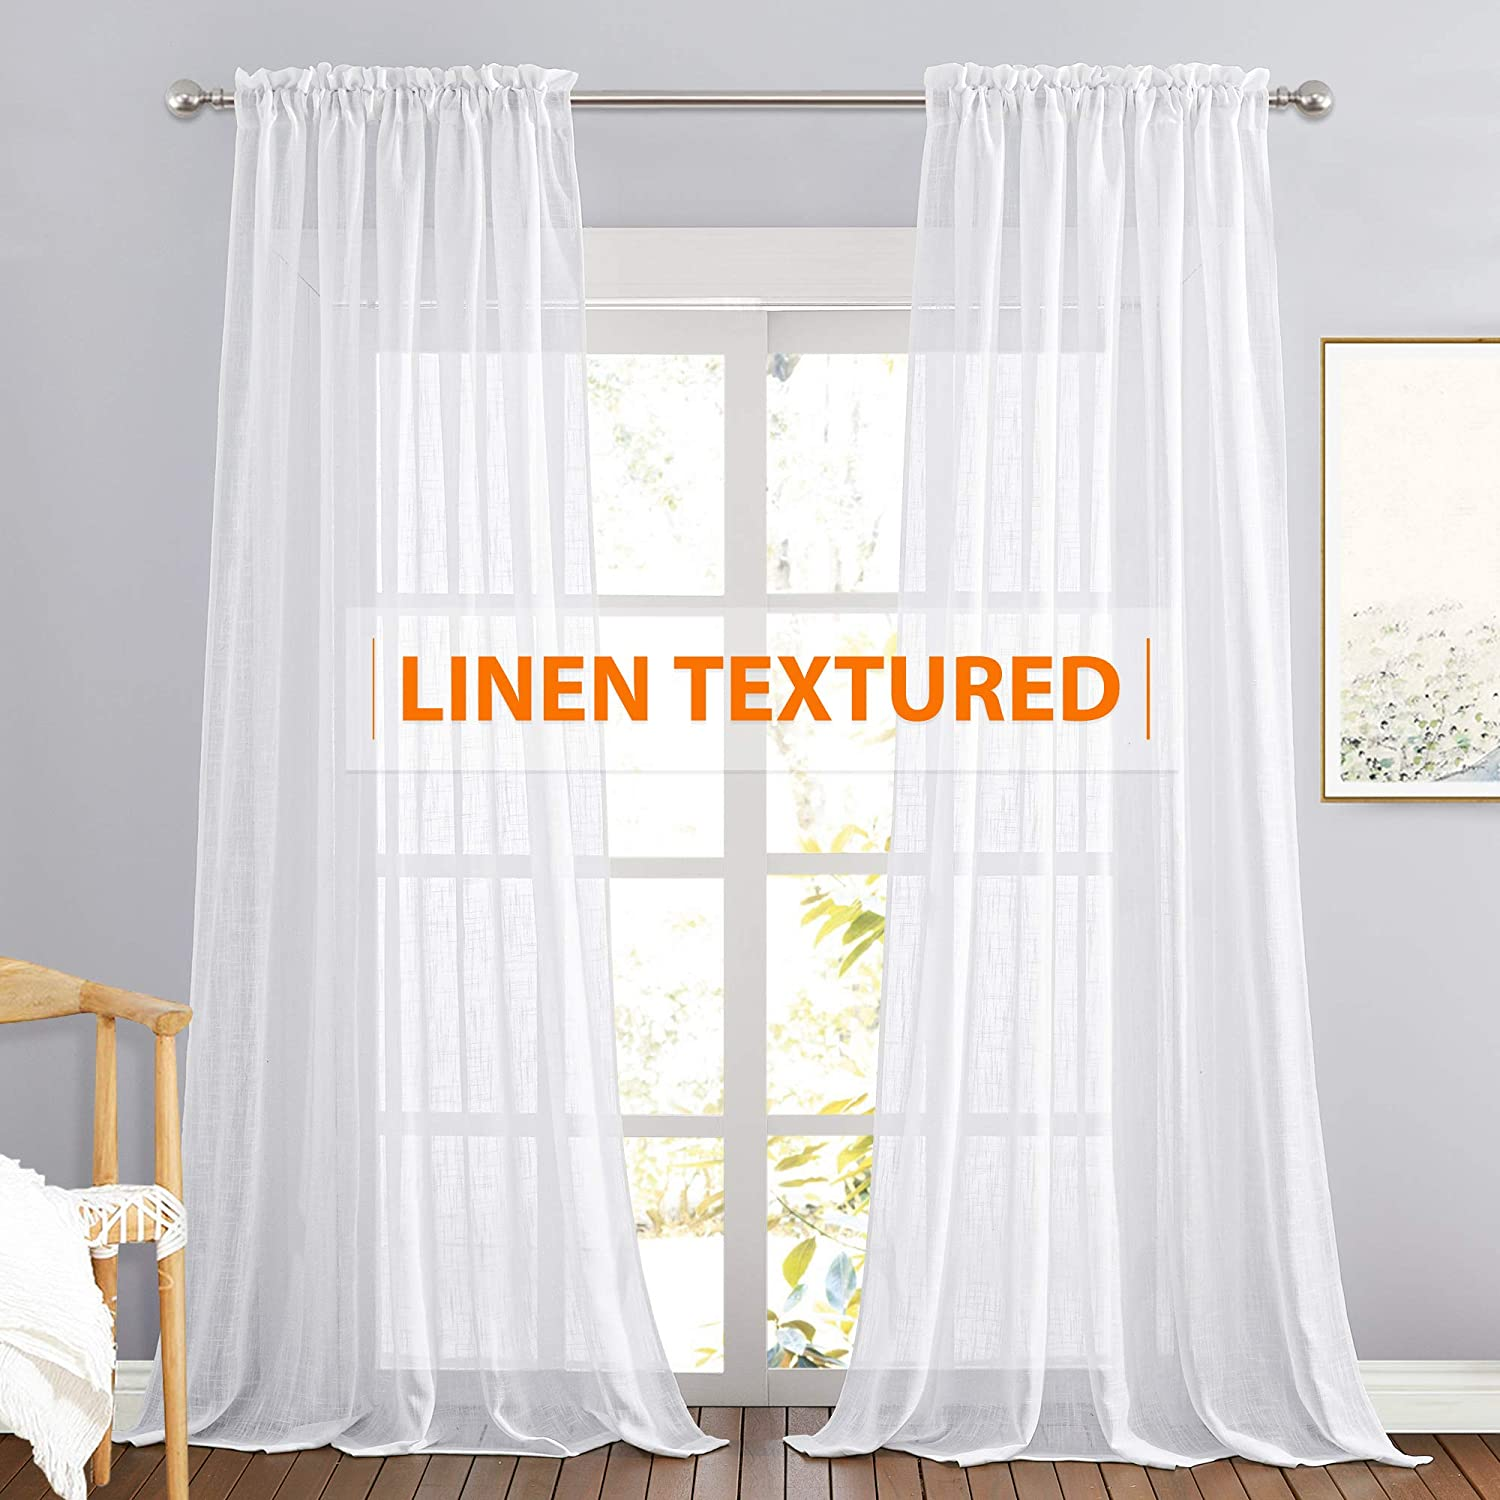 RYB HOME Extra Long Linen Curtains Semi Sheer Drapes Natural Linen Textured Blend Boho Window Decor for Living Room Bedroom Front Door High Ceiling Window, White, W 70 x L 108, 1 Pair